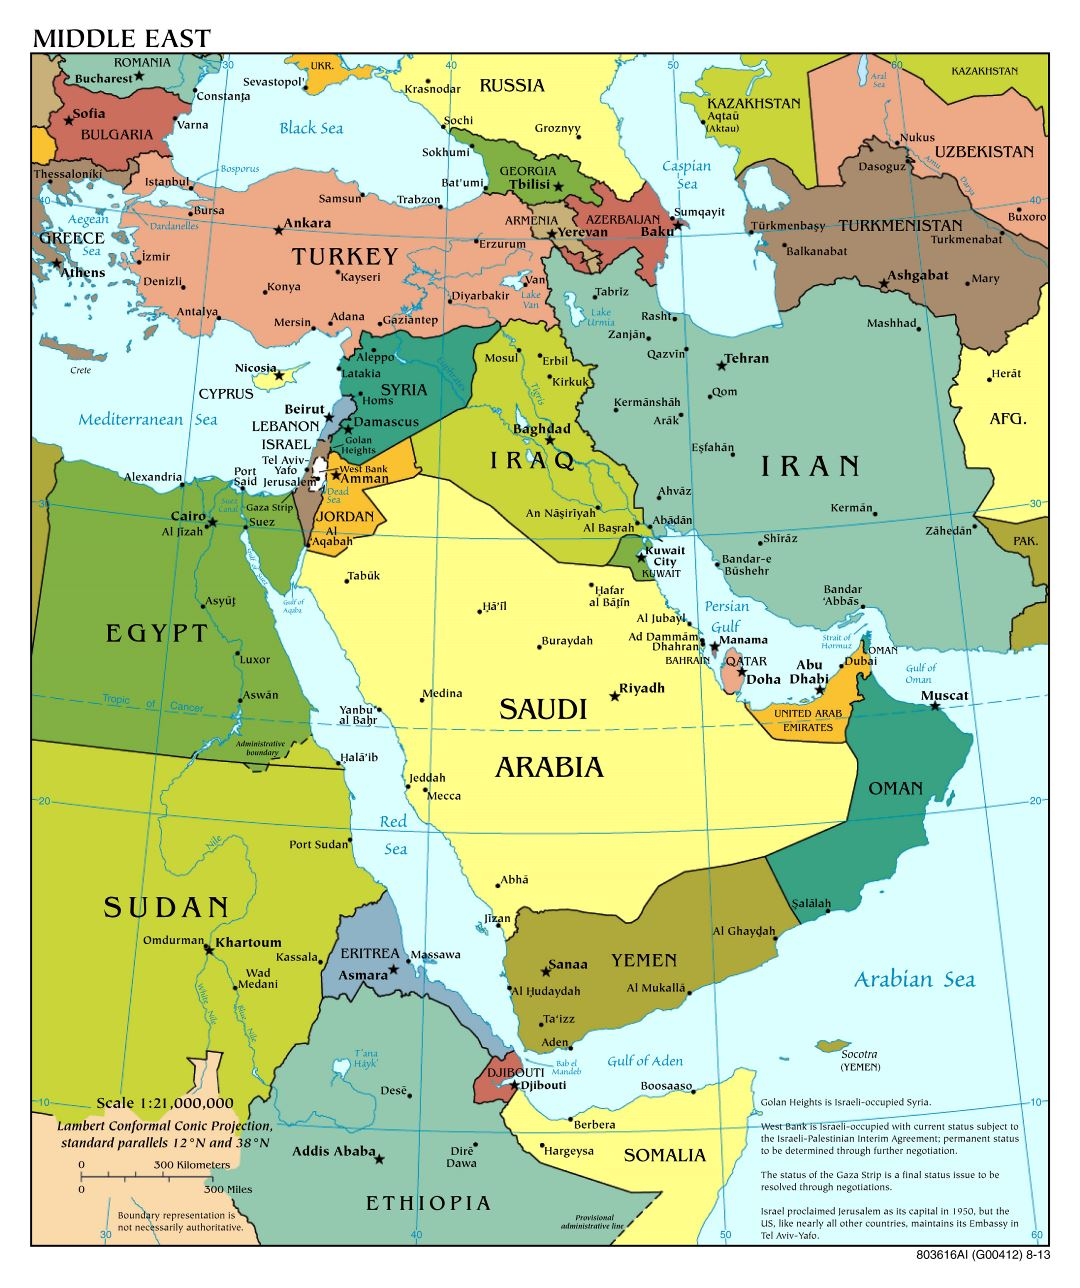 Large scale political map of the Middle East with major cities - 2013